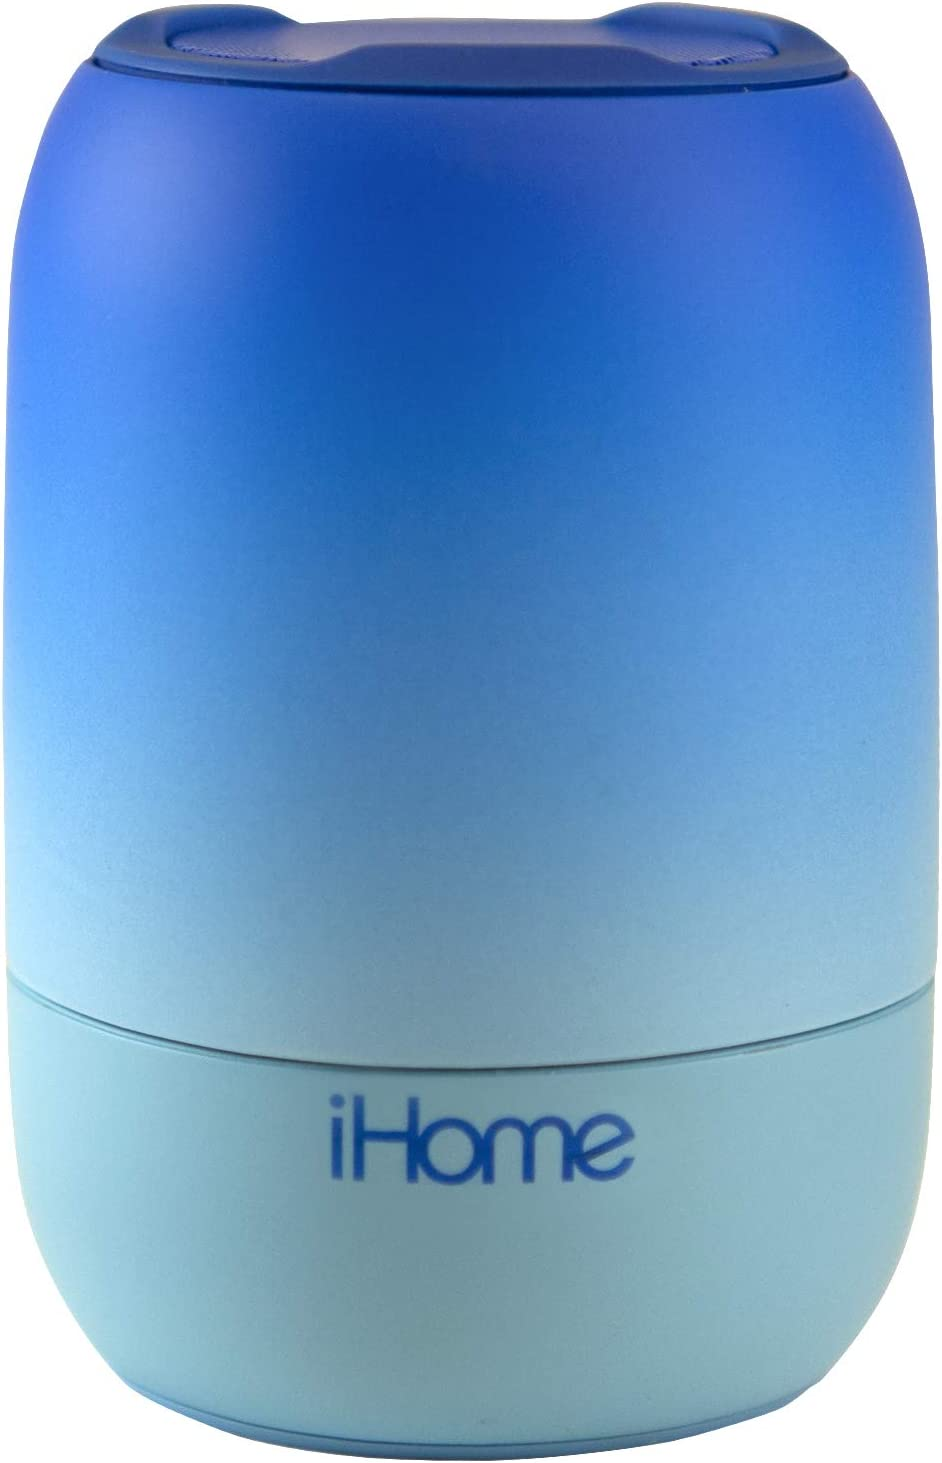 iHome PlayFade Portable Bluetooth Speaker - Water-Resistant Rechargeable Audio Device for Outdoor Events, Pool Party, Beach, Camping (Model iBT400L) Blue